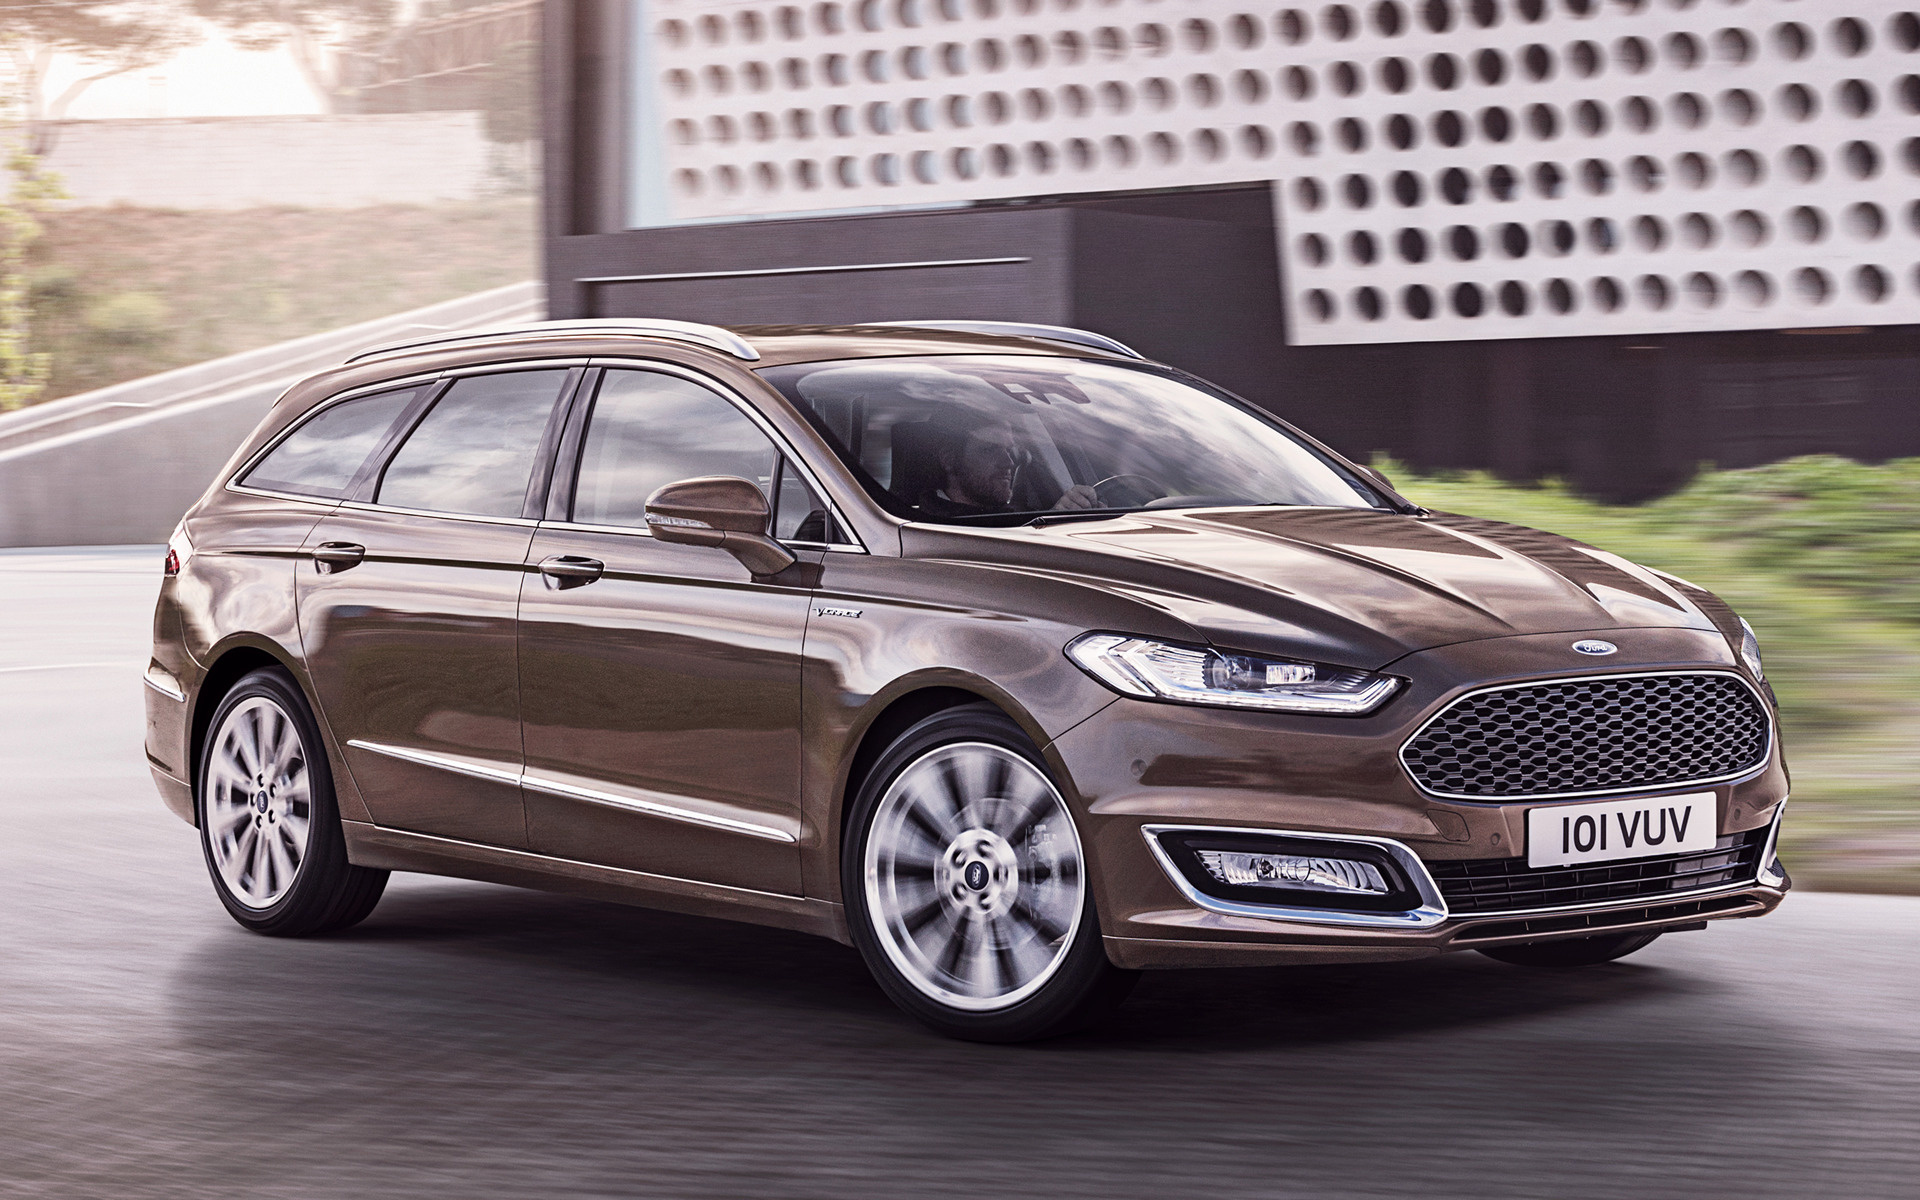 2015 Ford Vignale Mondeo Turnier   Wallpapers and HD Images Car 1920x1200